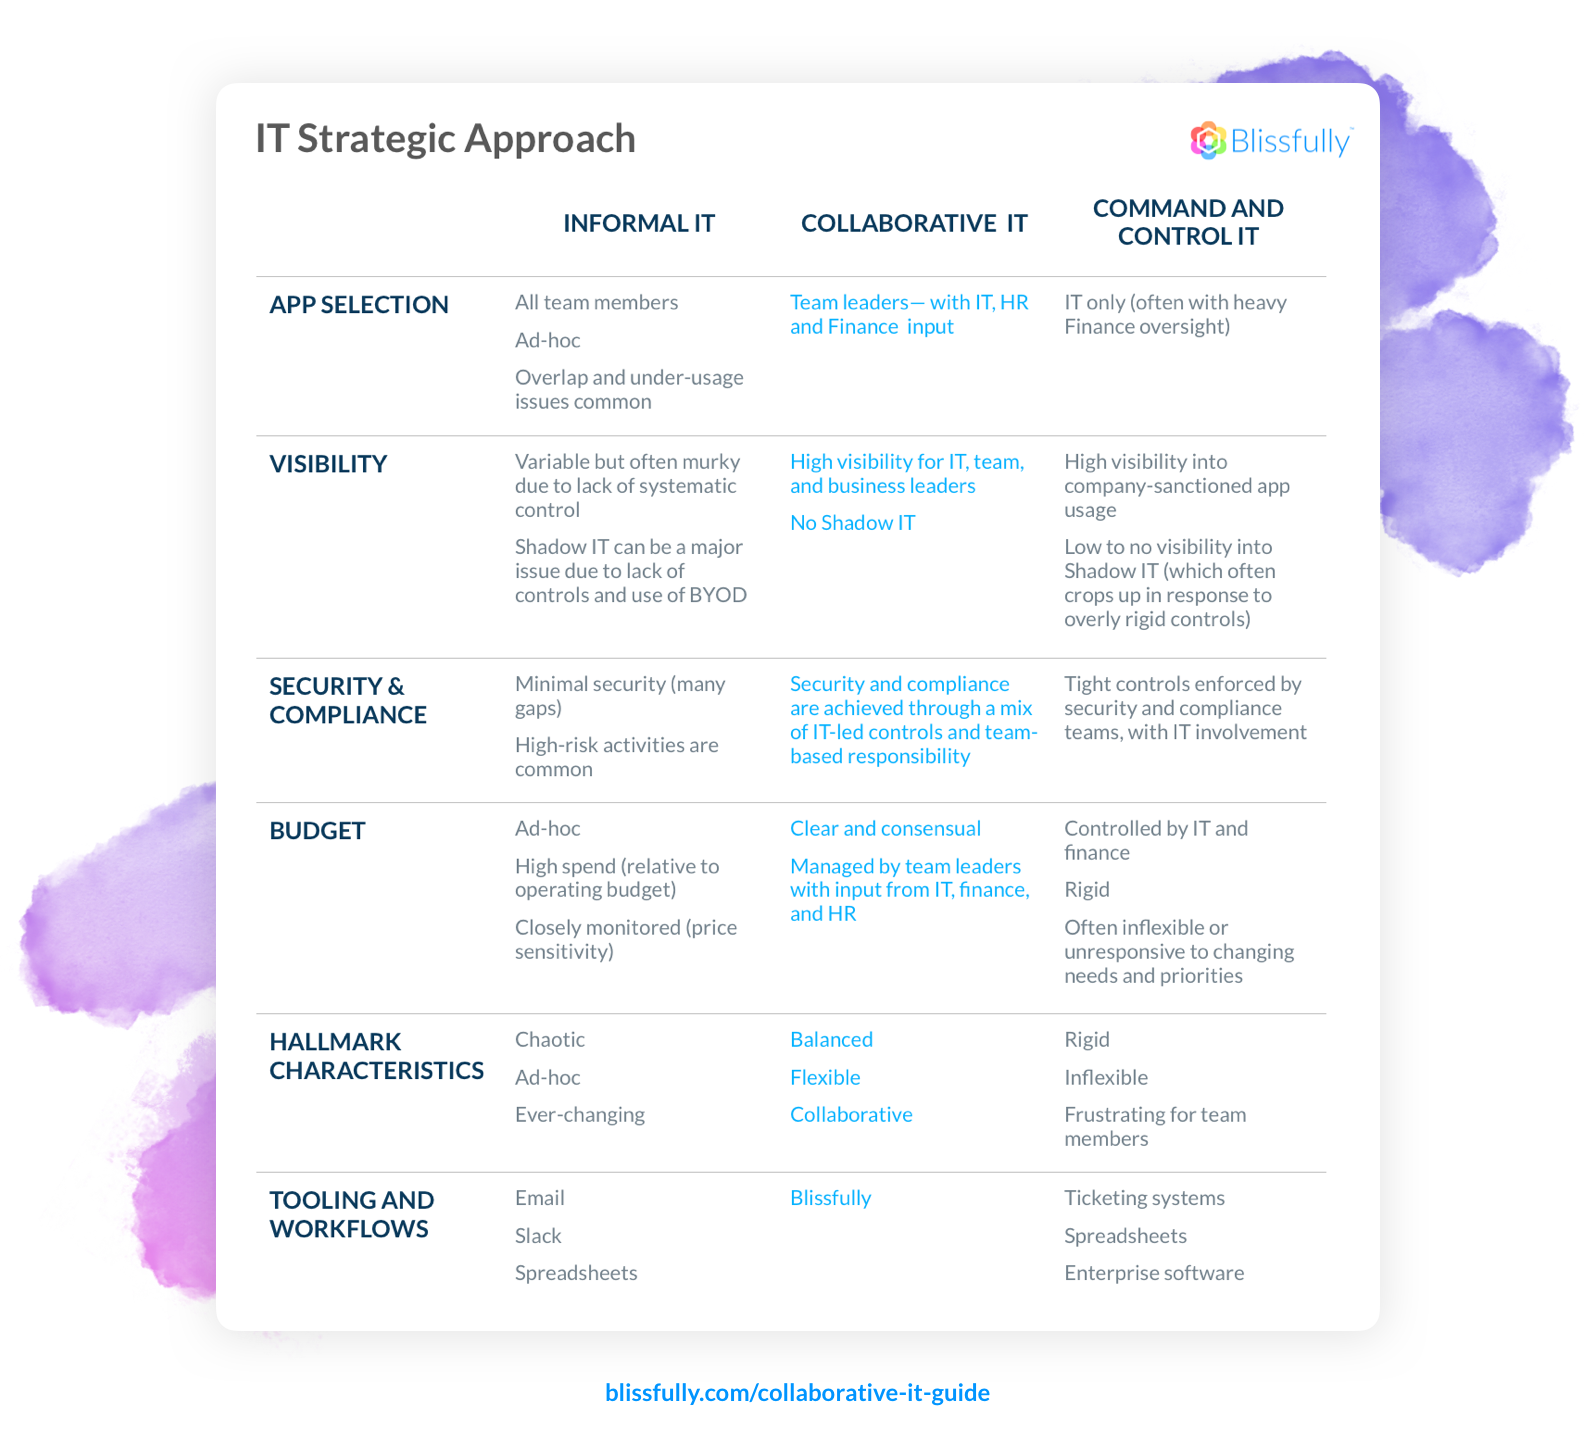 IT Strategic Approach Table